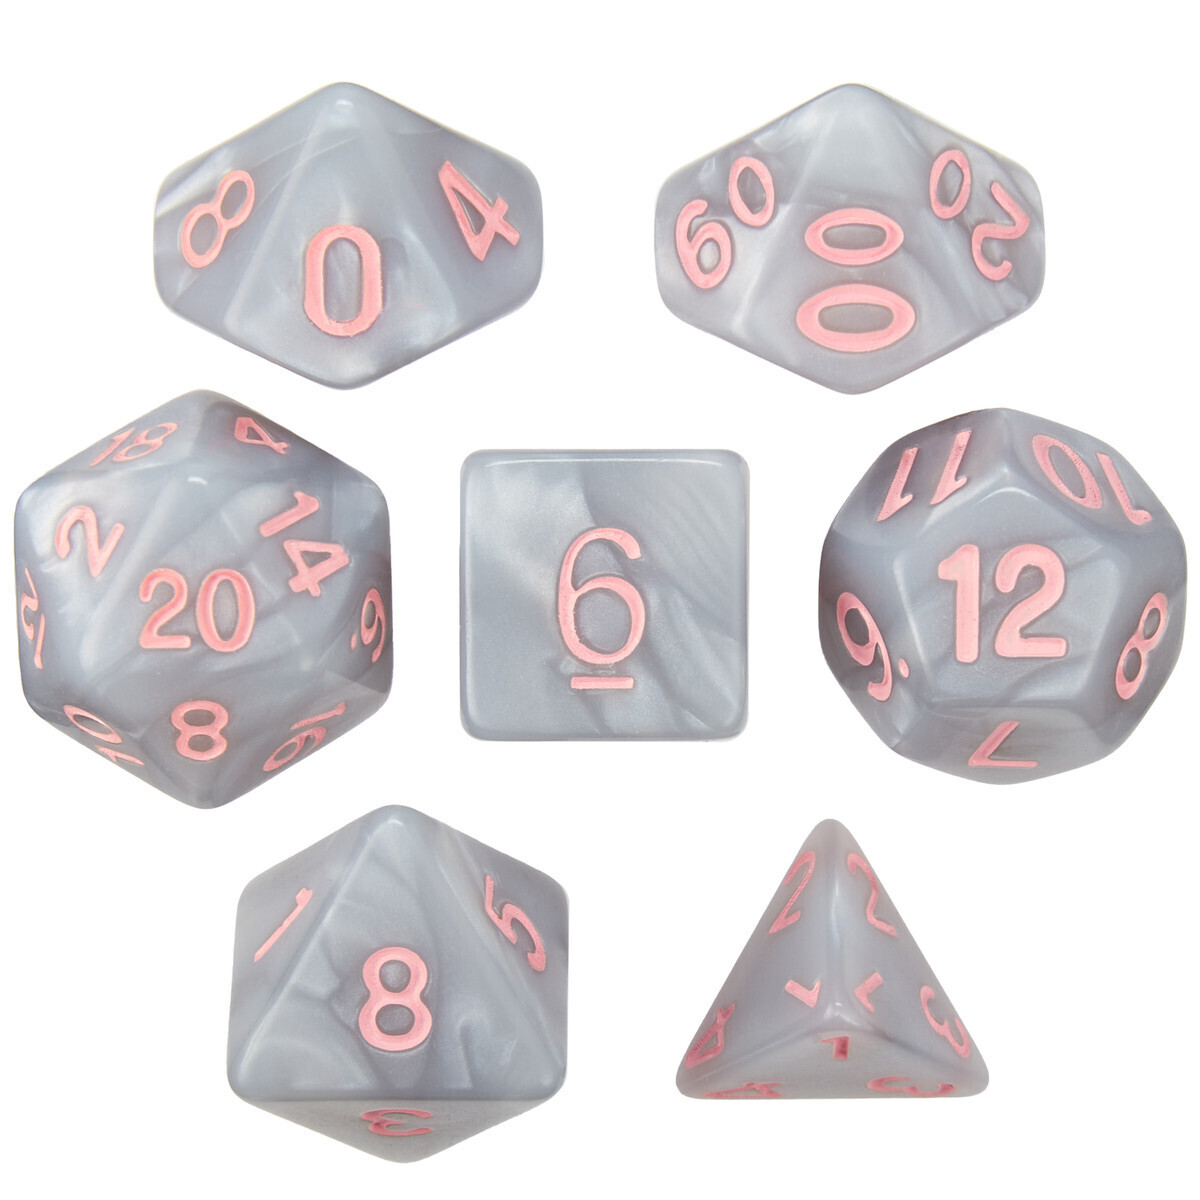 16mm 7 Die Polyhedral Set - Fairy Quartz - Pearlized Gray With Pink Paint - RPG Tabletop Games Roleplay Cards CCG Board Random Roll Decision